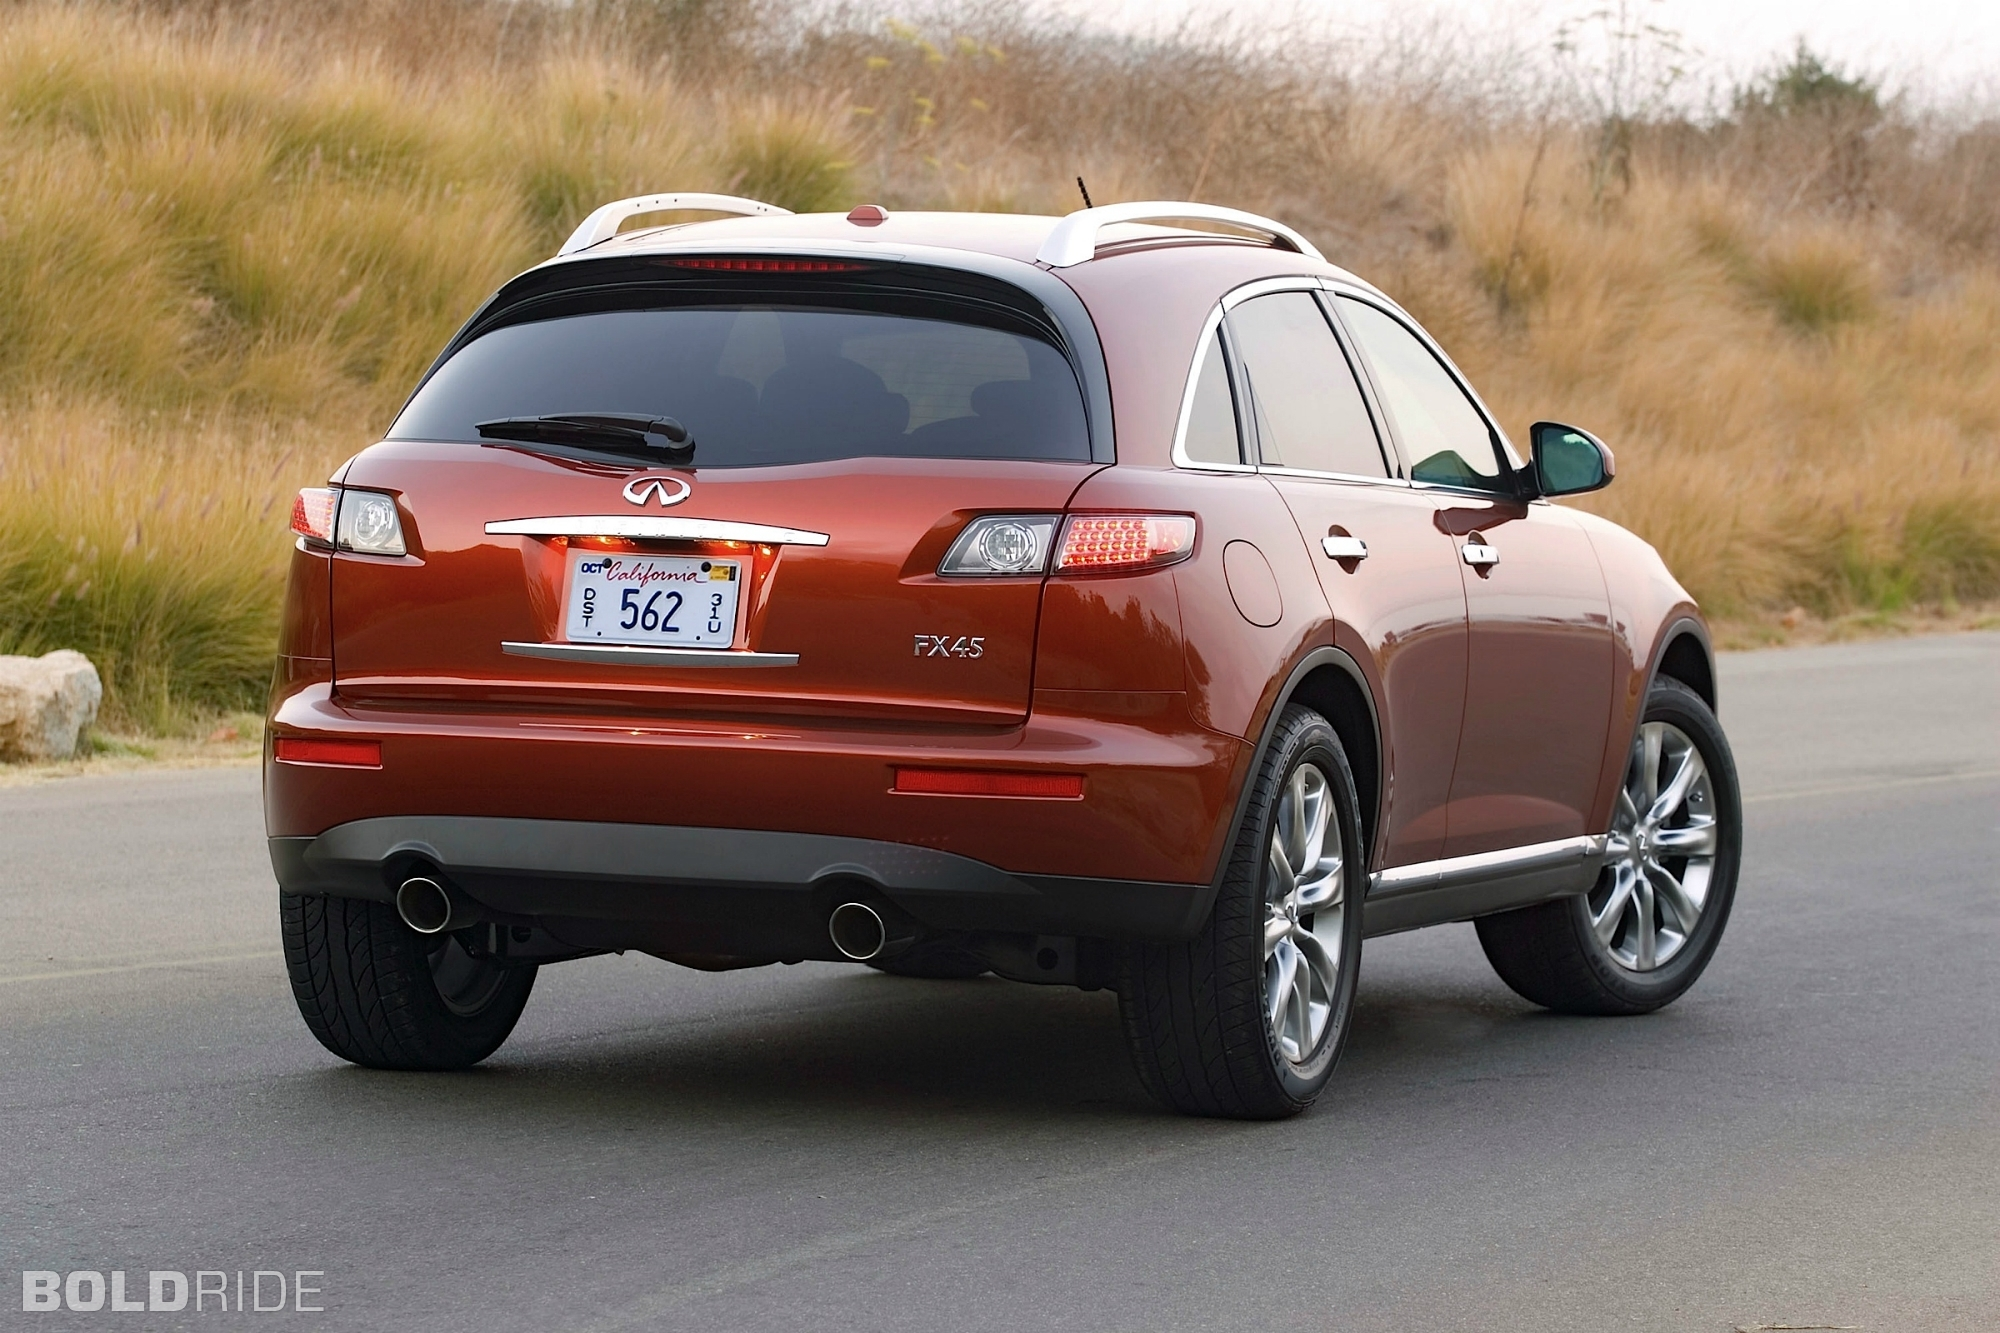 2008 Infiniti Fx35 Red 200 Interior And Exterior Images